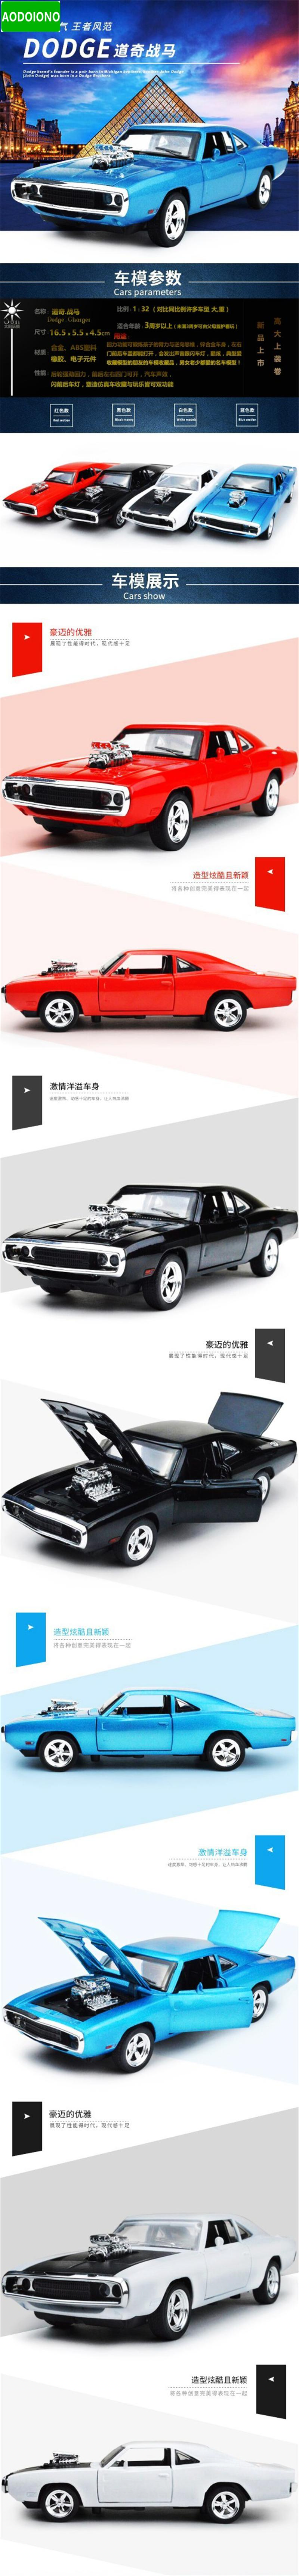 1 32 The Fast and The Furious Dodge Charger Alloy Car Models Kids